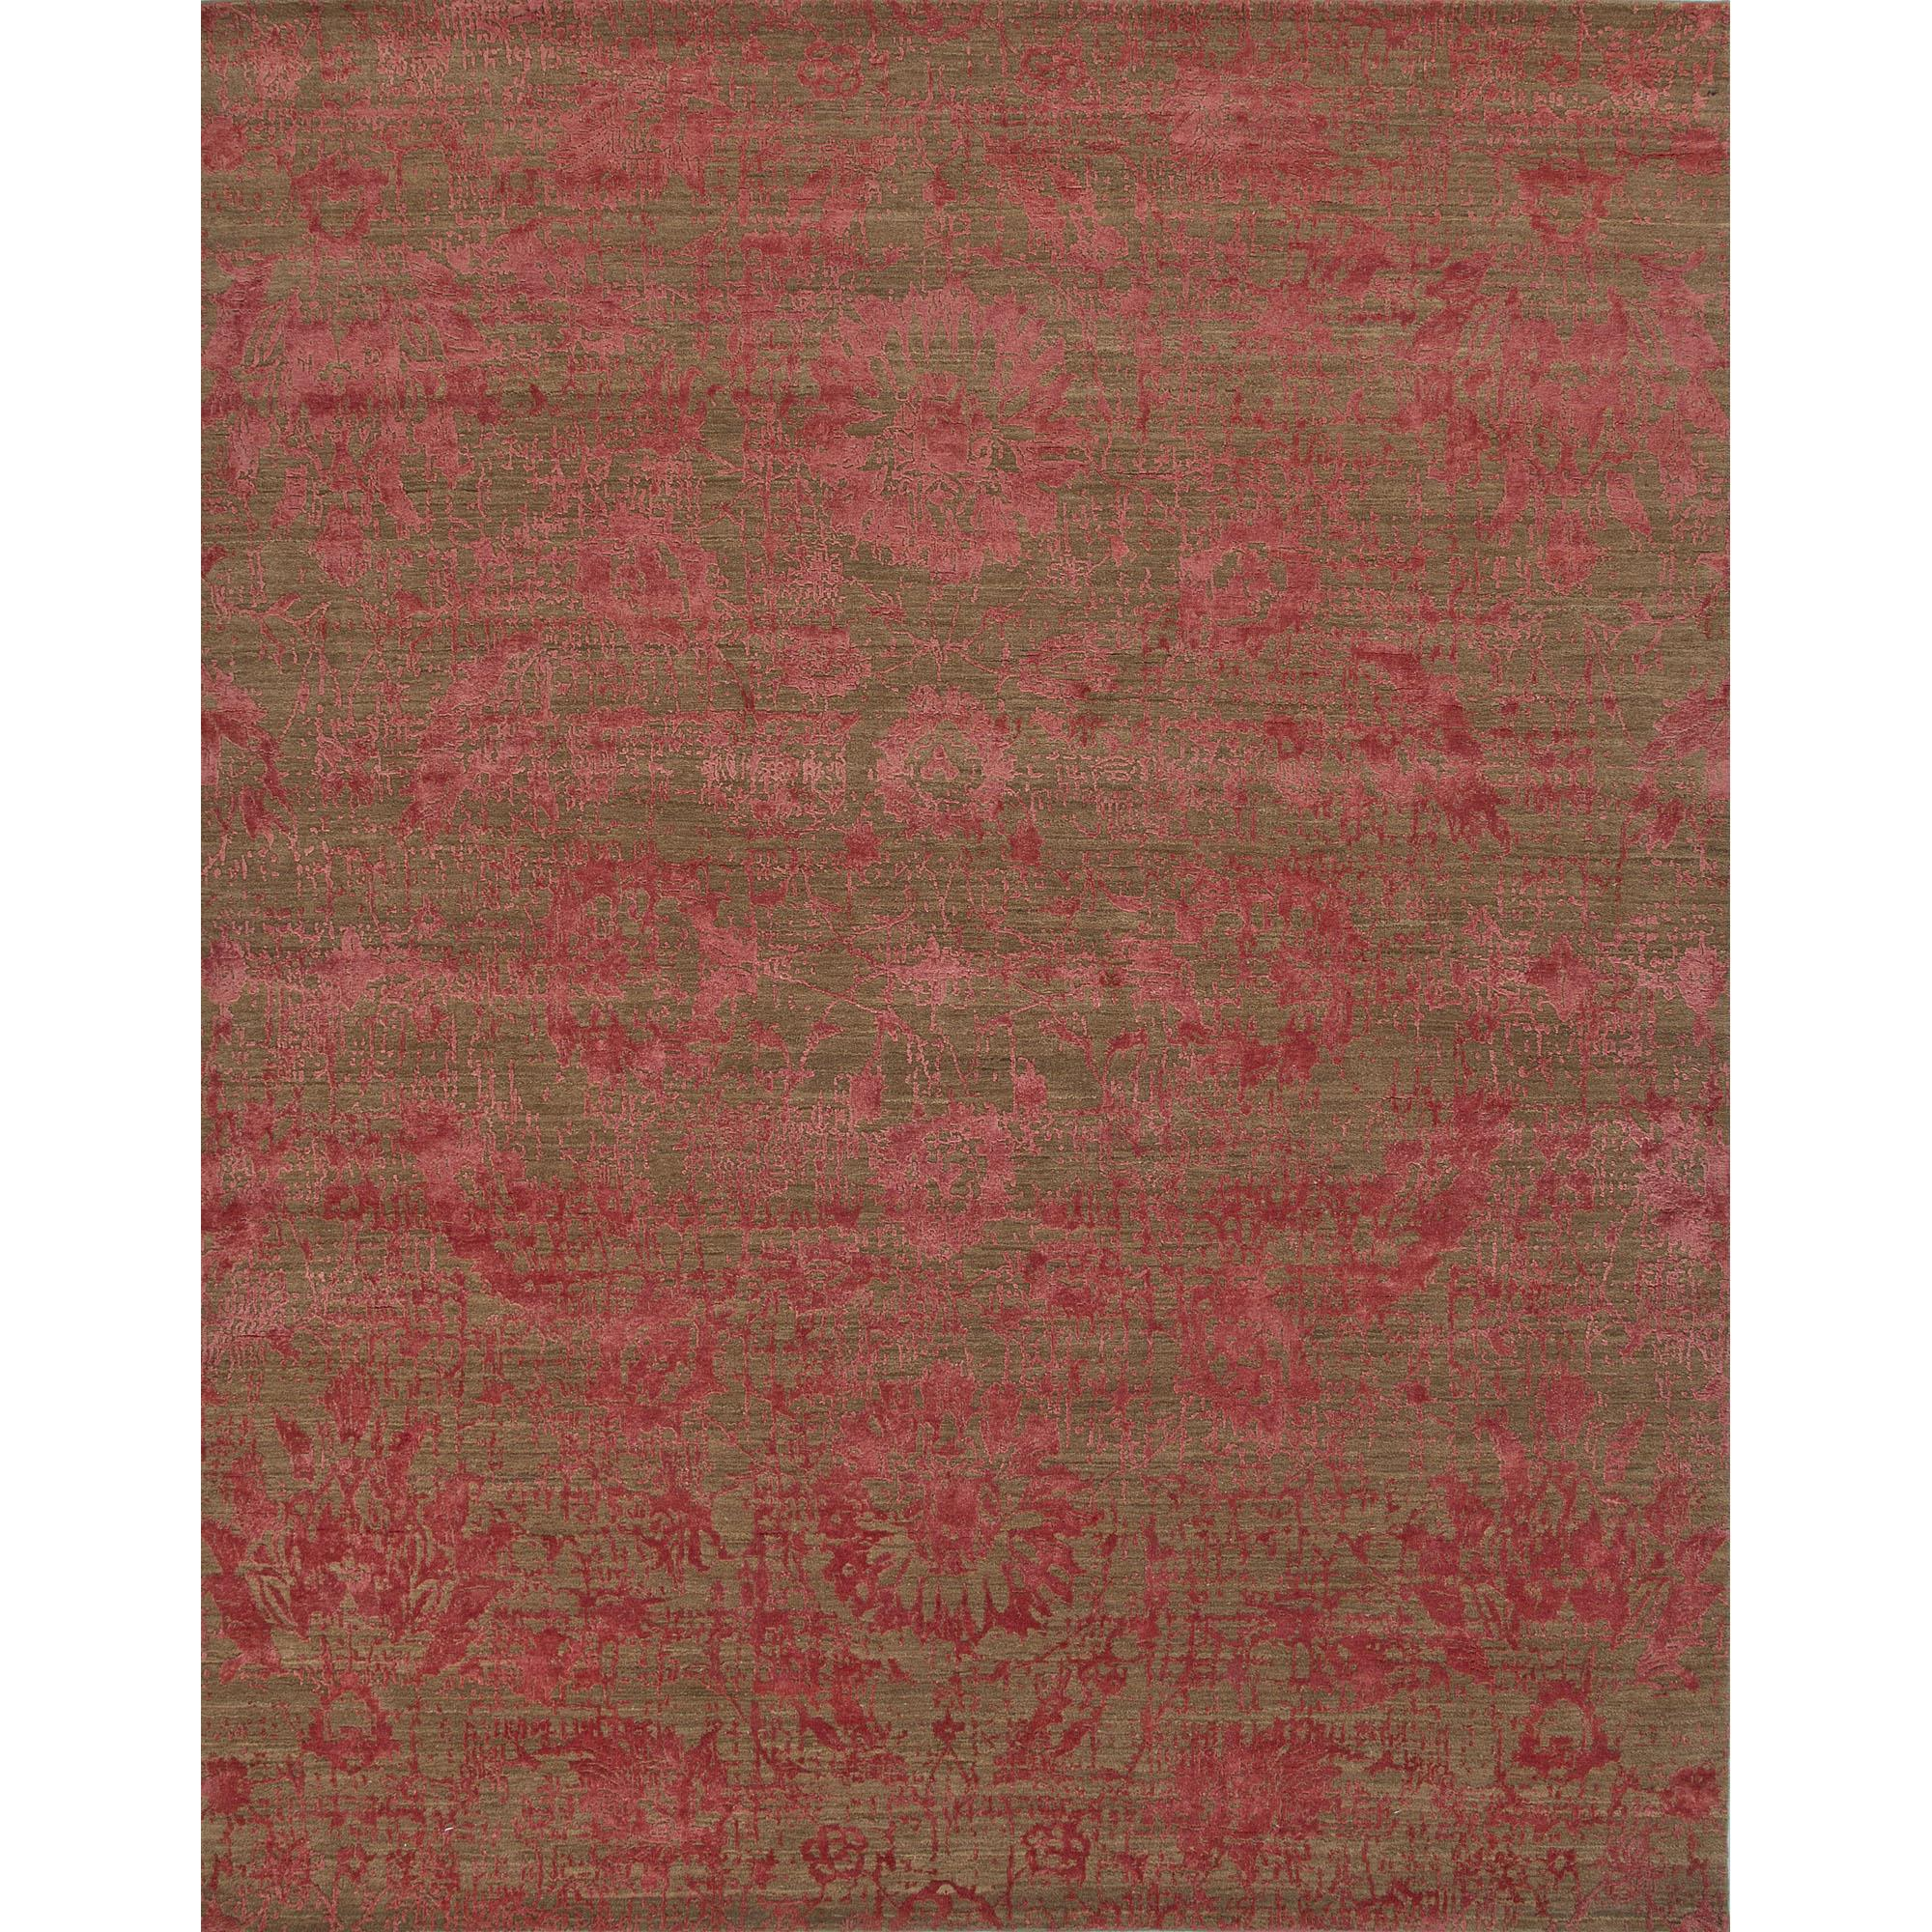 JAIPUR Rugs Chaos Theory By Kavi 10 x 14 Rug - Item Number: RUG119220